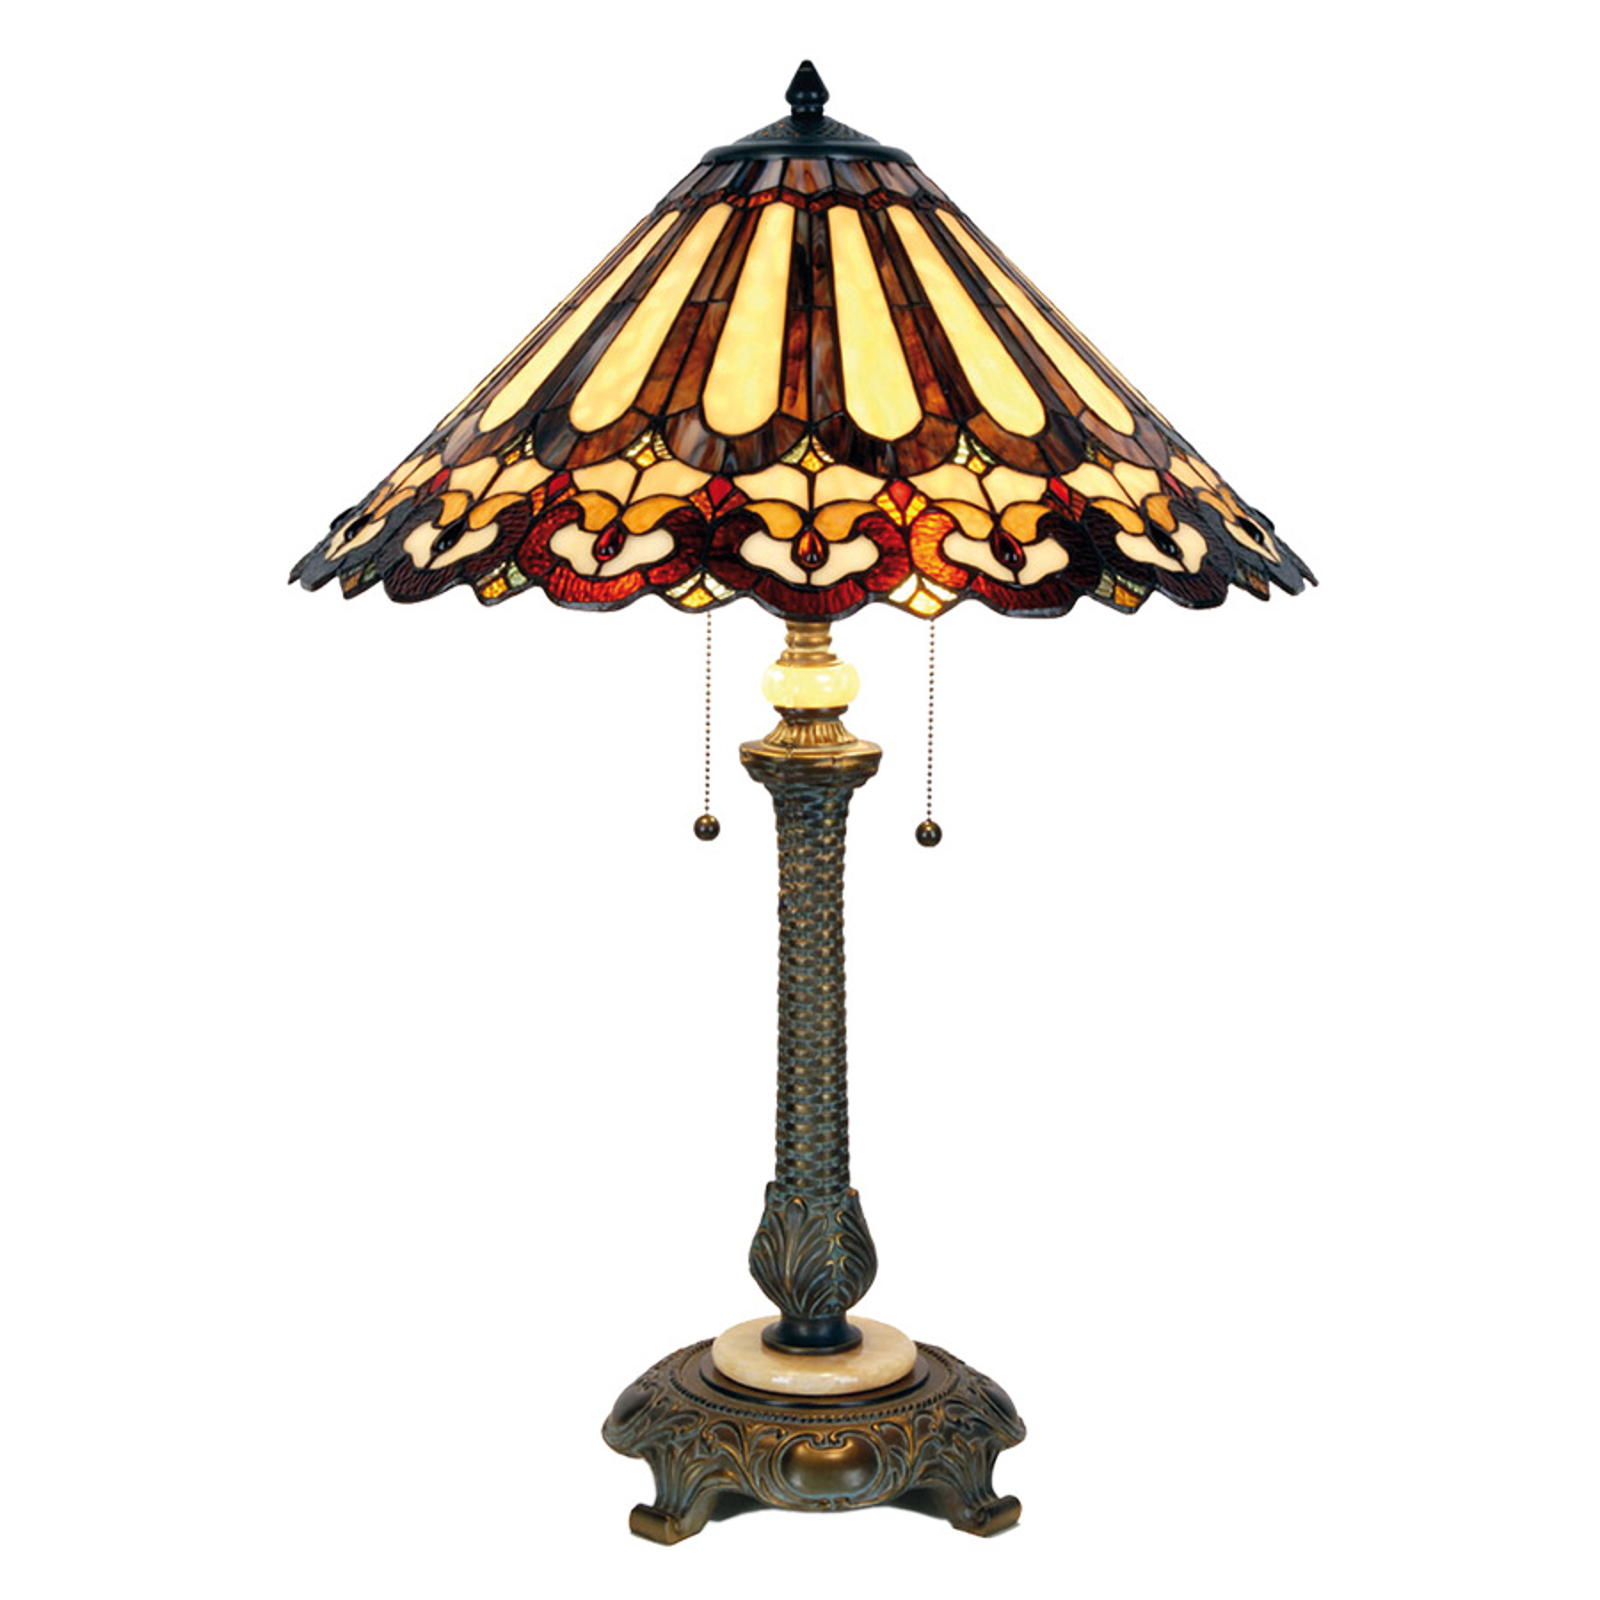 Table lamp Cecilia in the Tiffany style_6064232_1